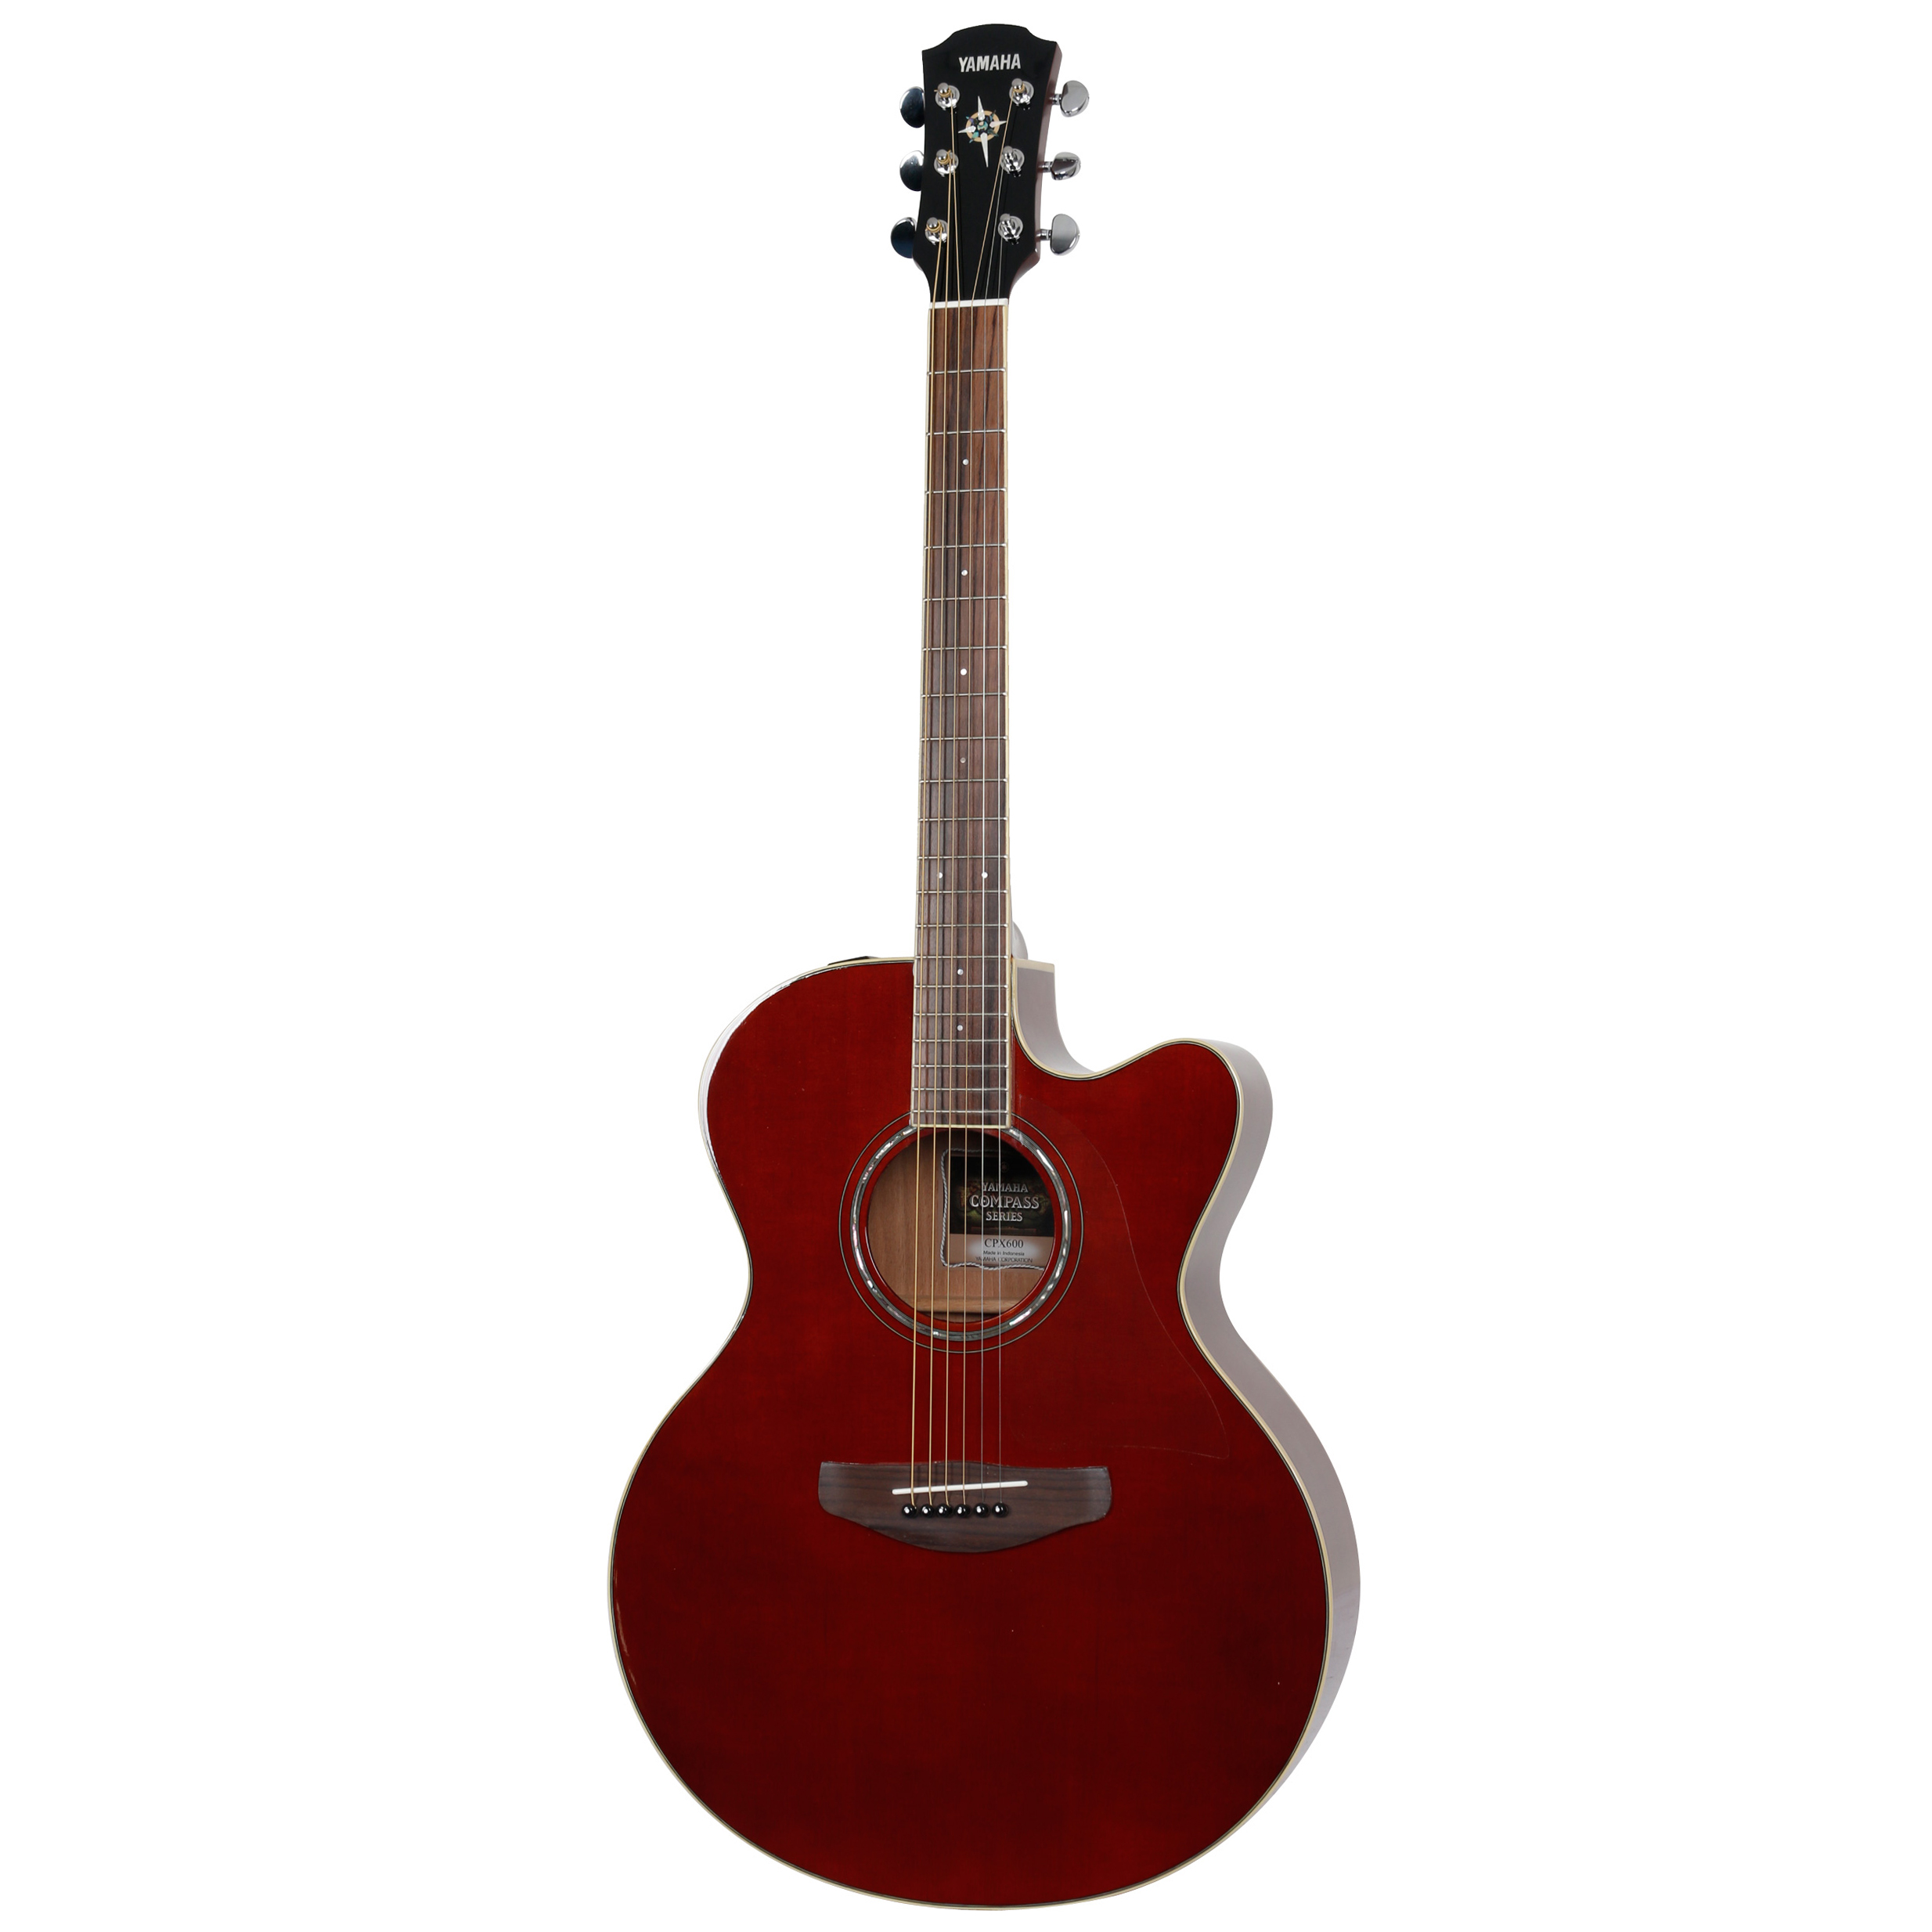 Yamaha CPX600 Root Beer electro acoustic guitar